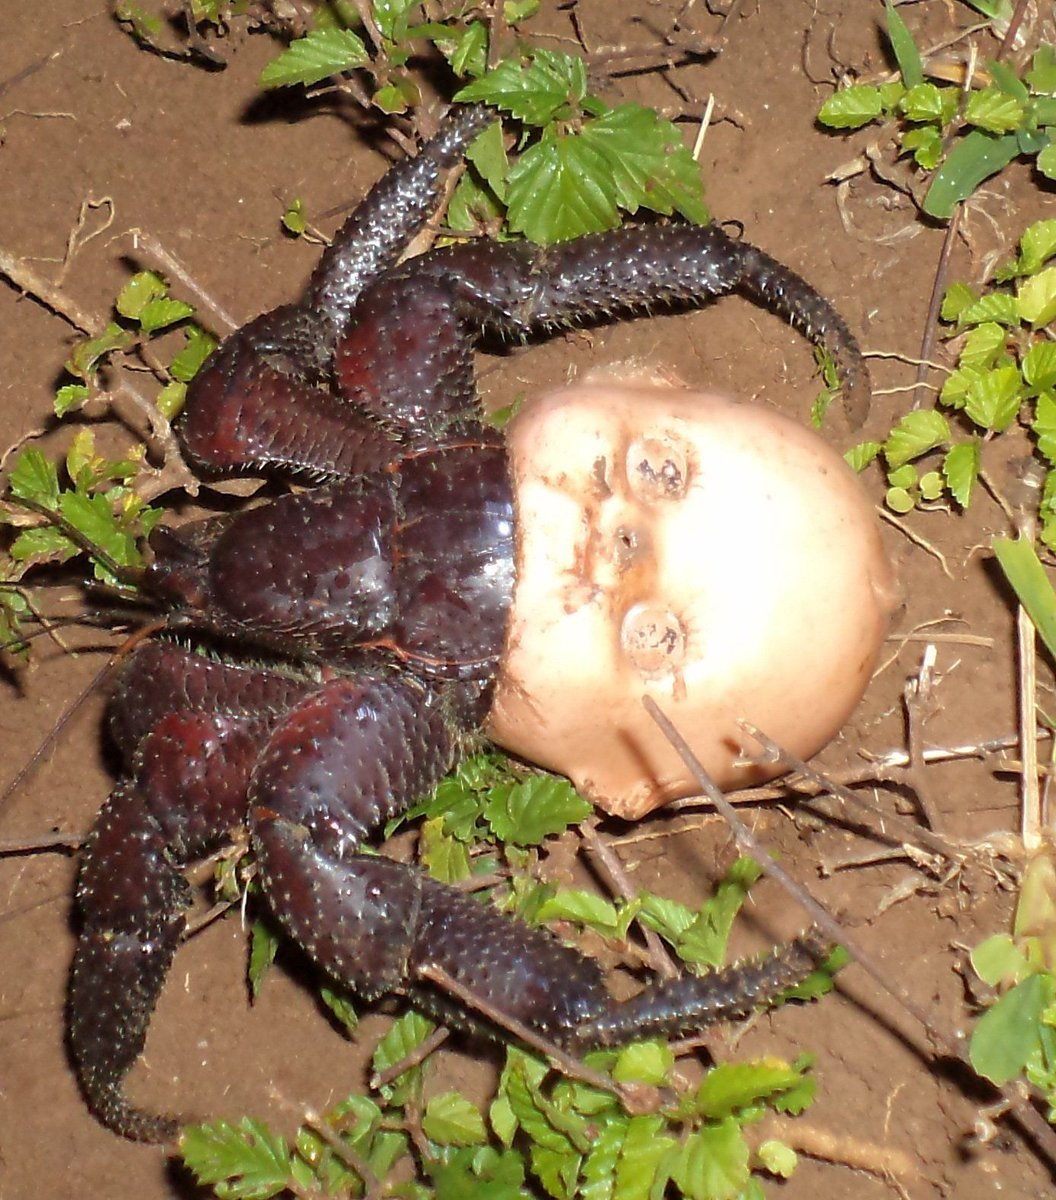 13-Hermit-crab-using-a-discarded-doll-head-for-a-shell.jpg